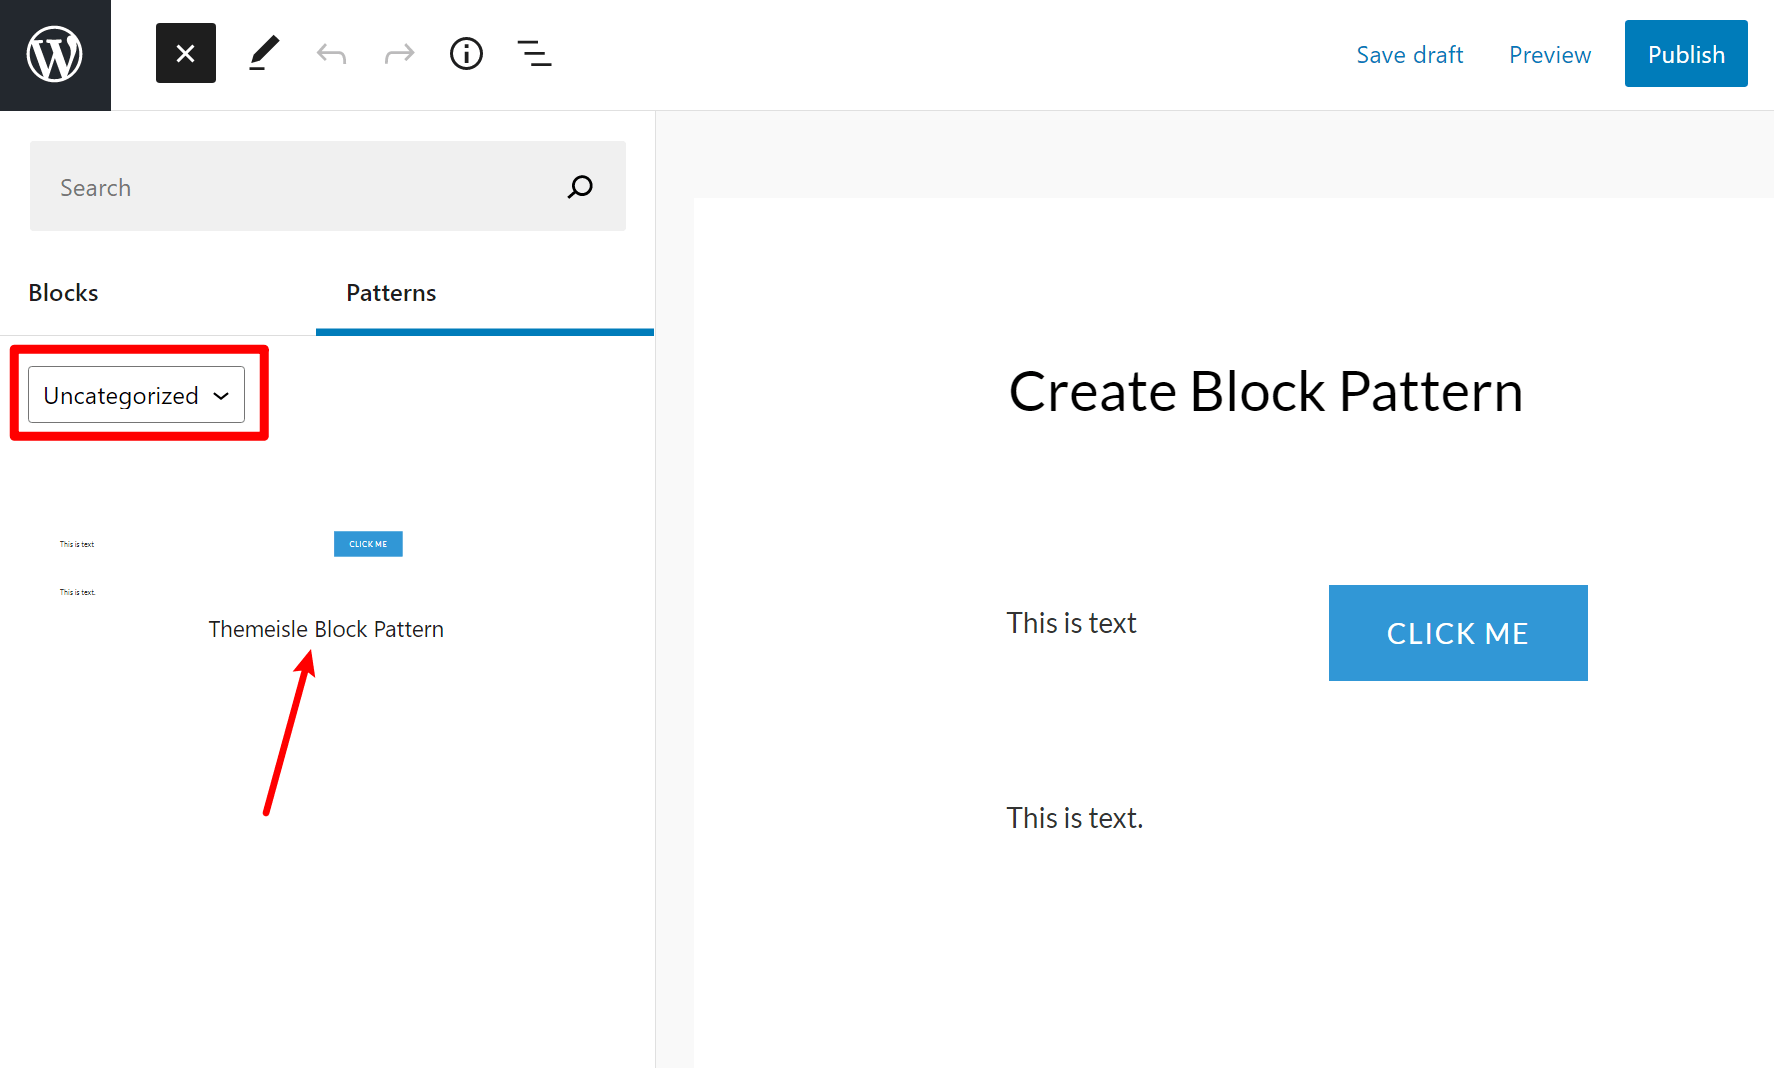 Insert your own block pattern